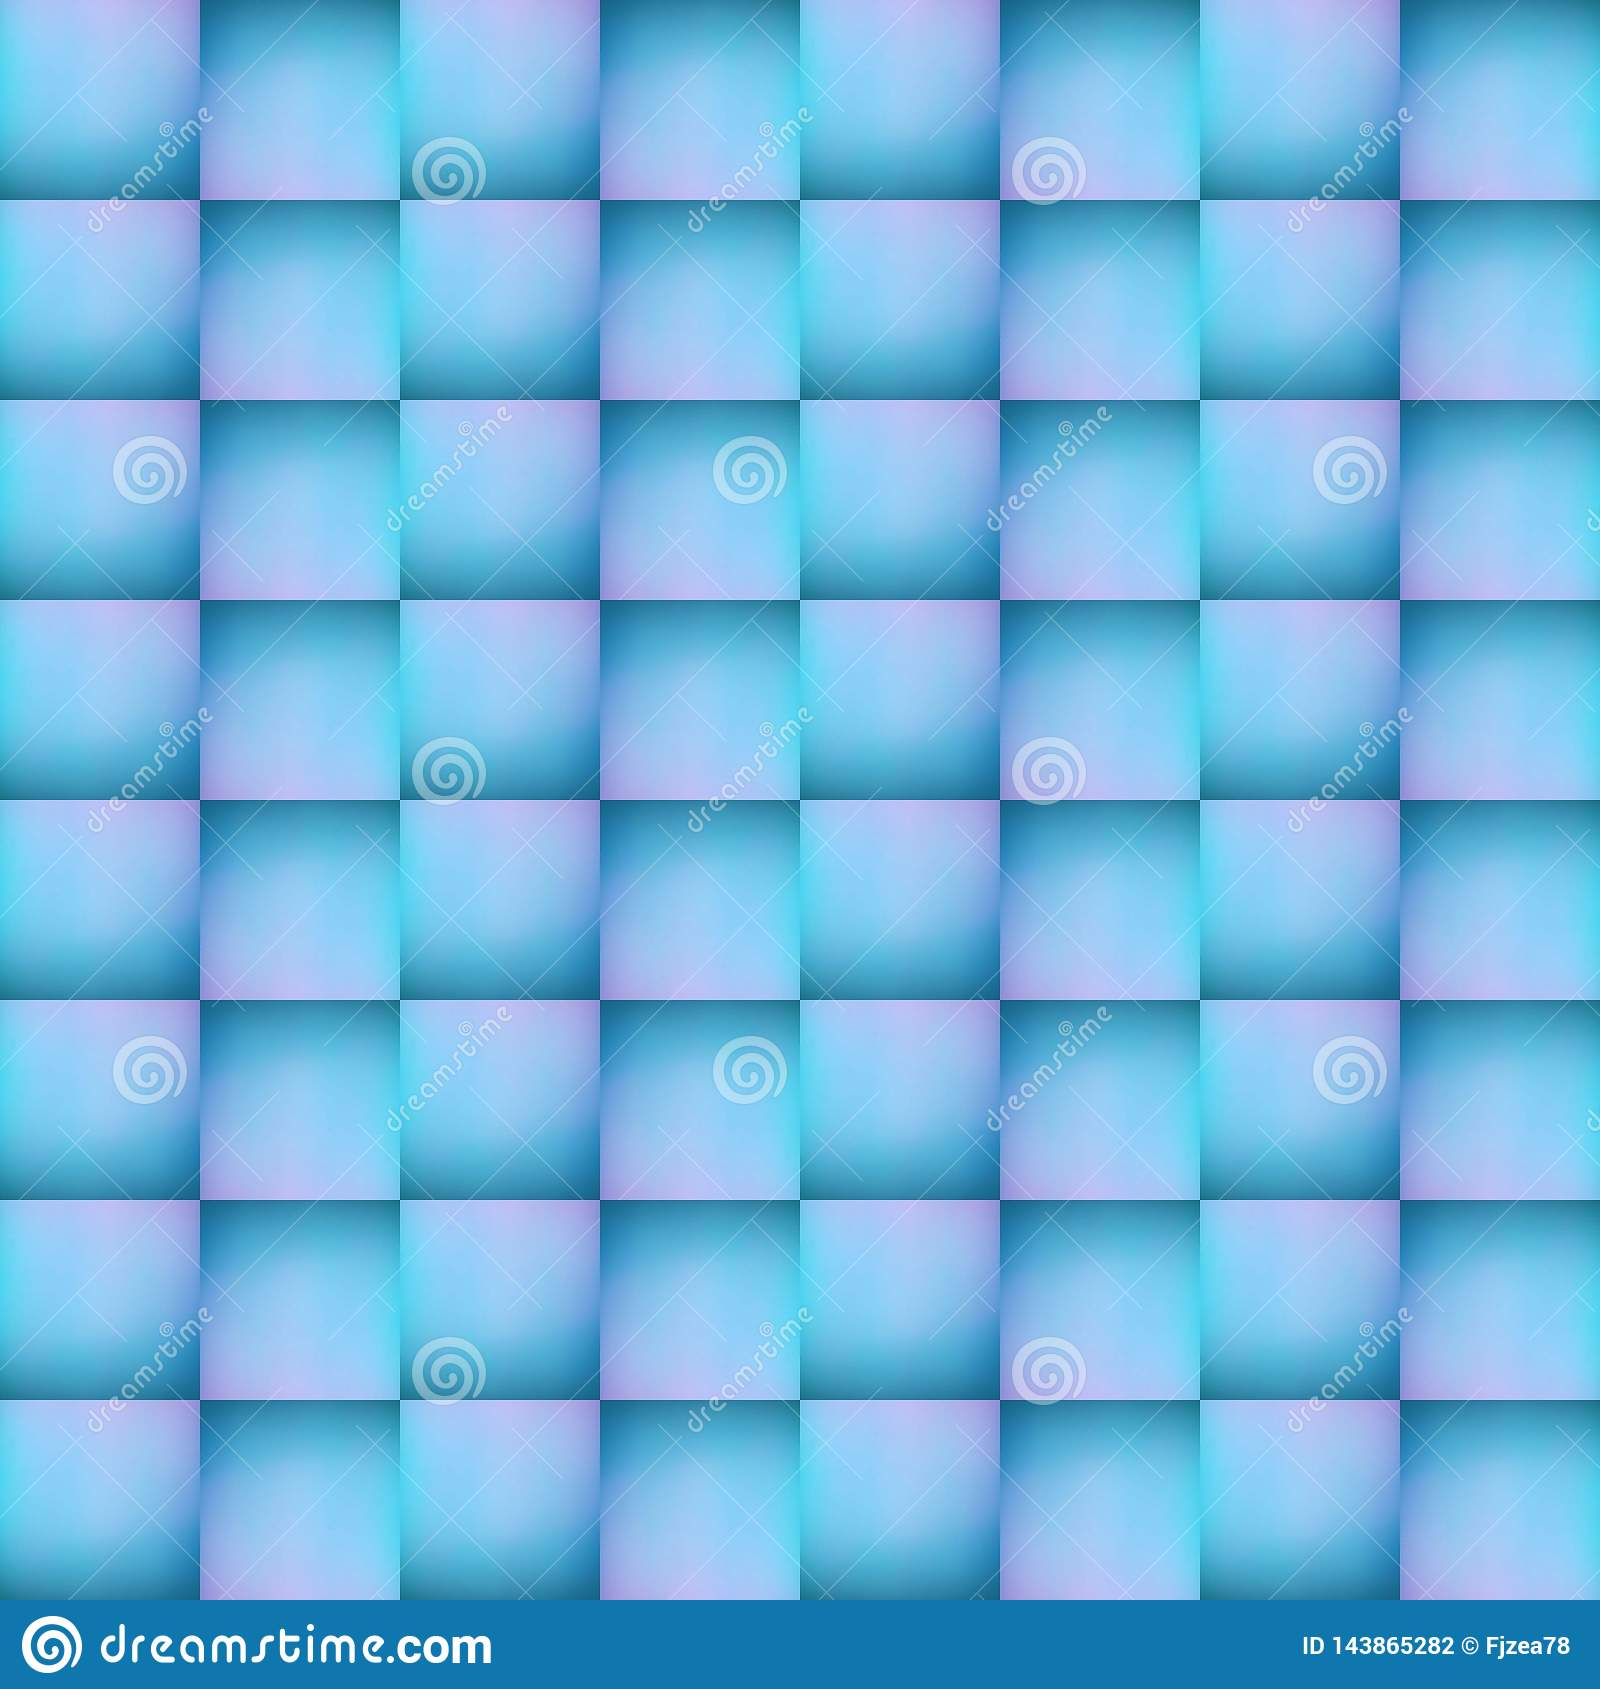 abstract design of collage from an opaque glass image with indirect light in blue and pink colors, background and texture